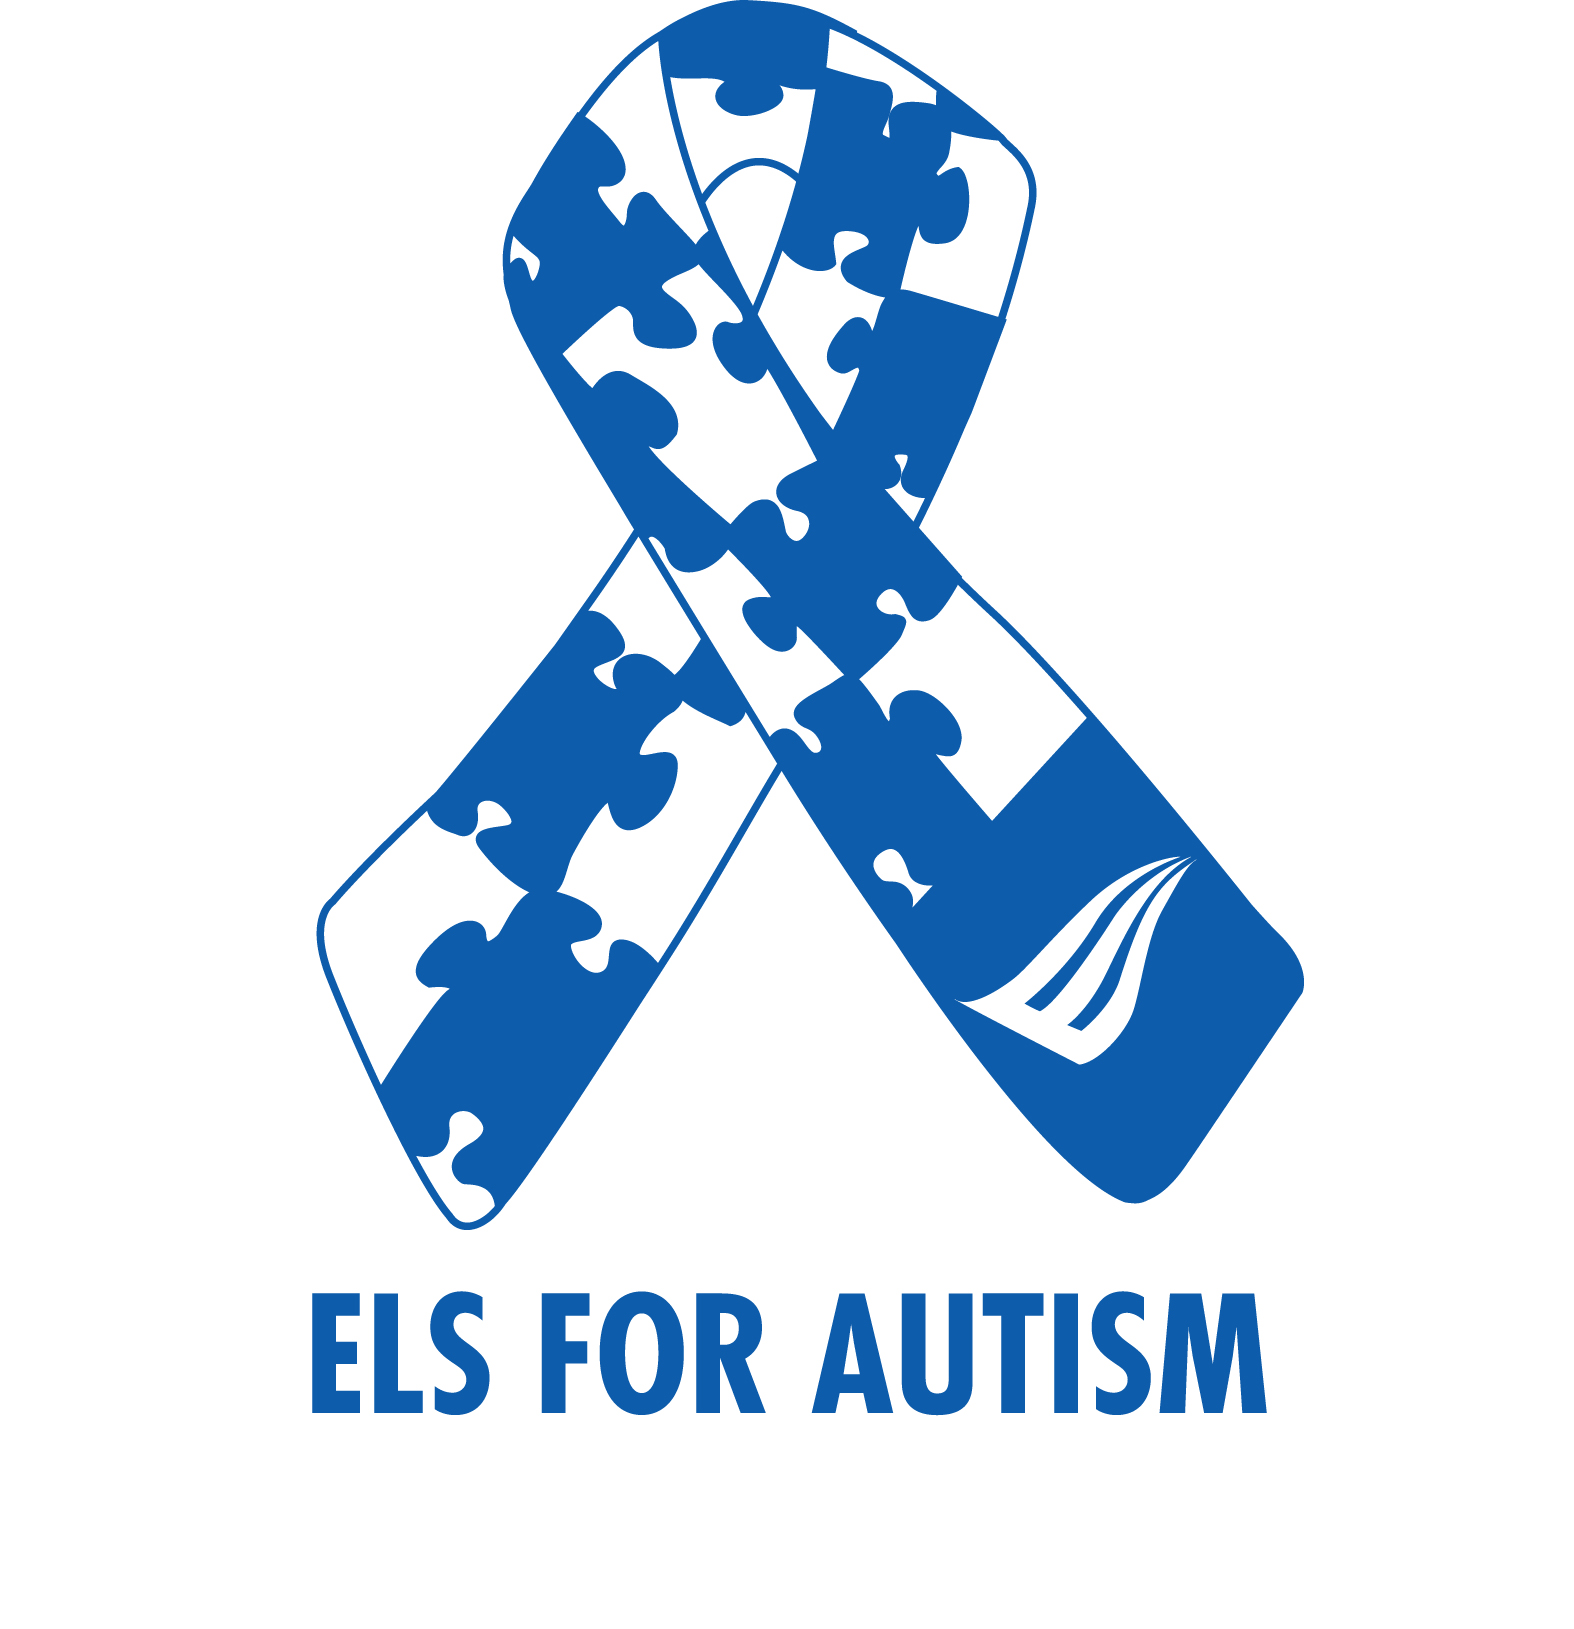 Els For Autism Foundation Guidestar Profile